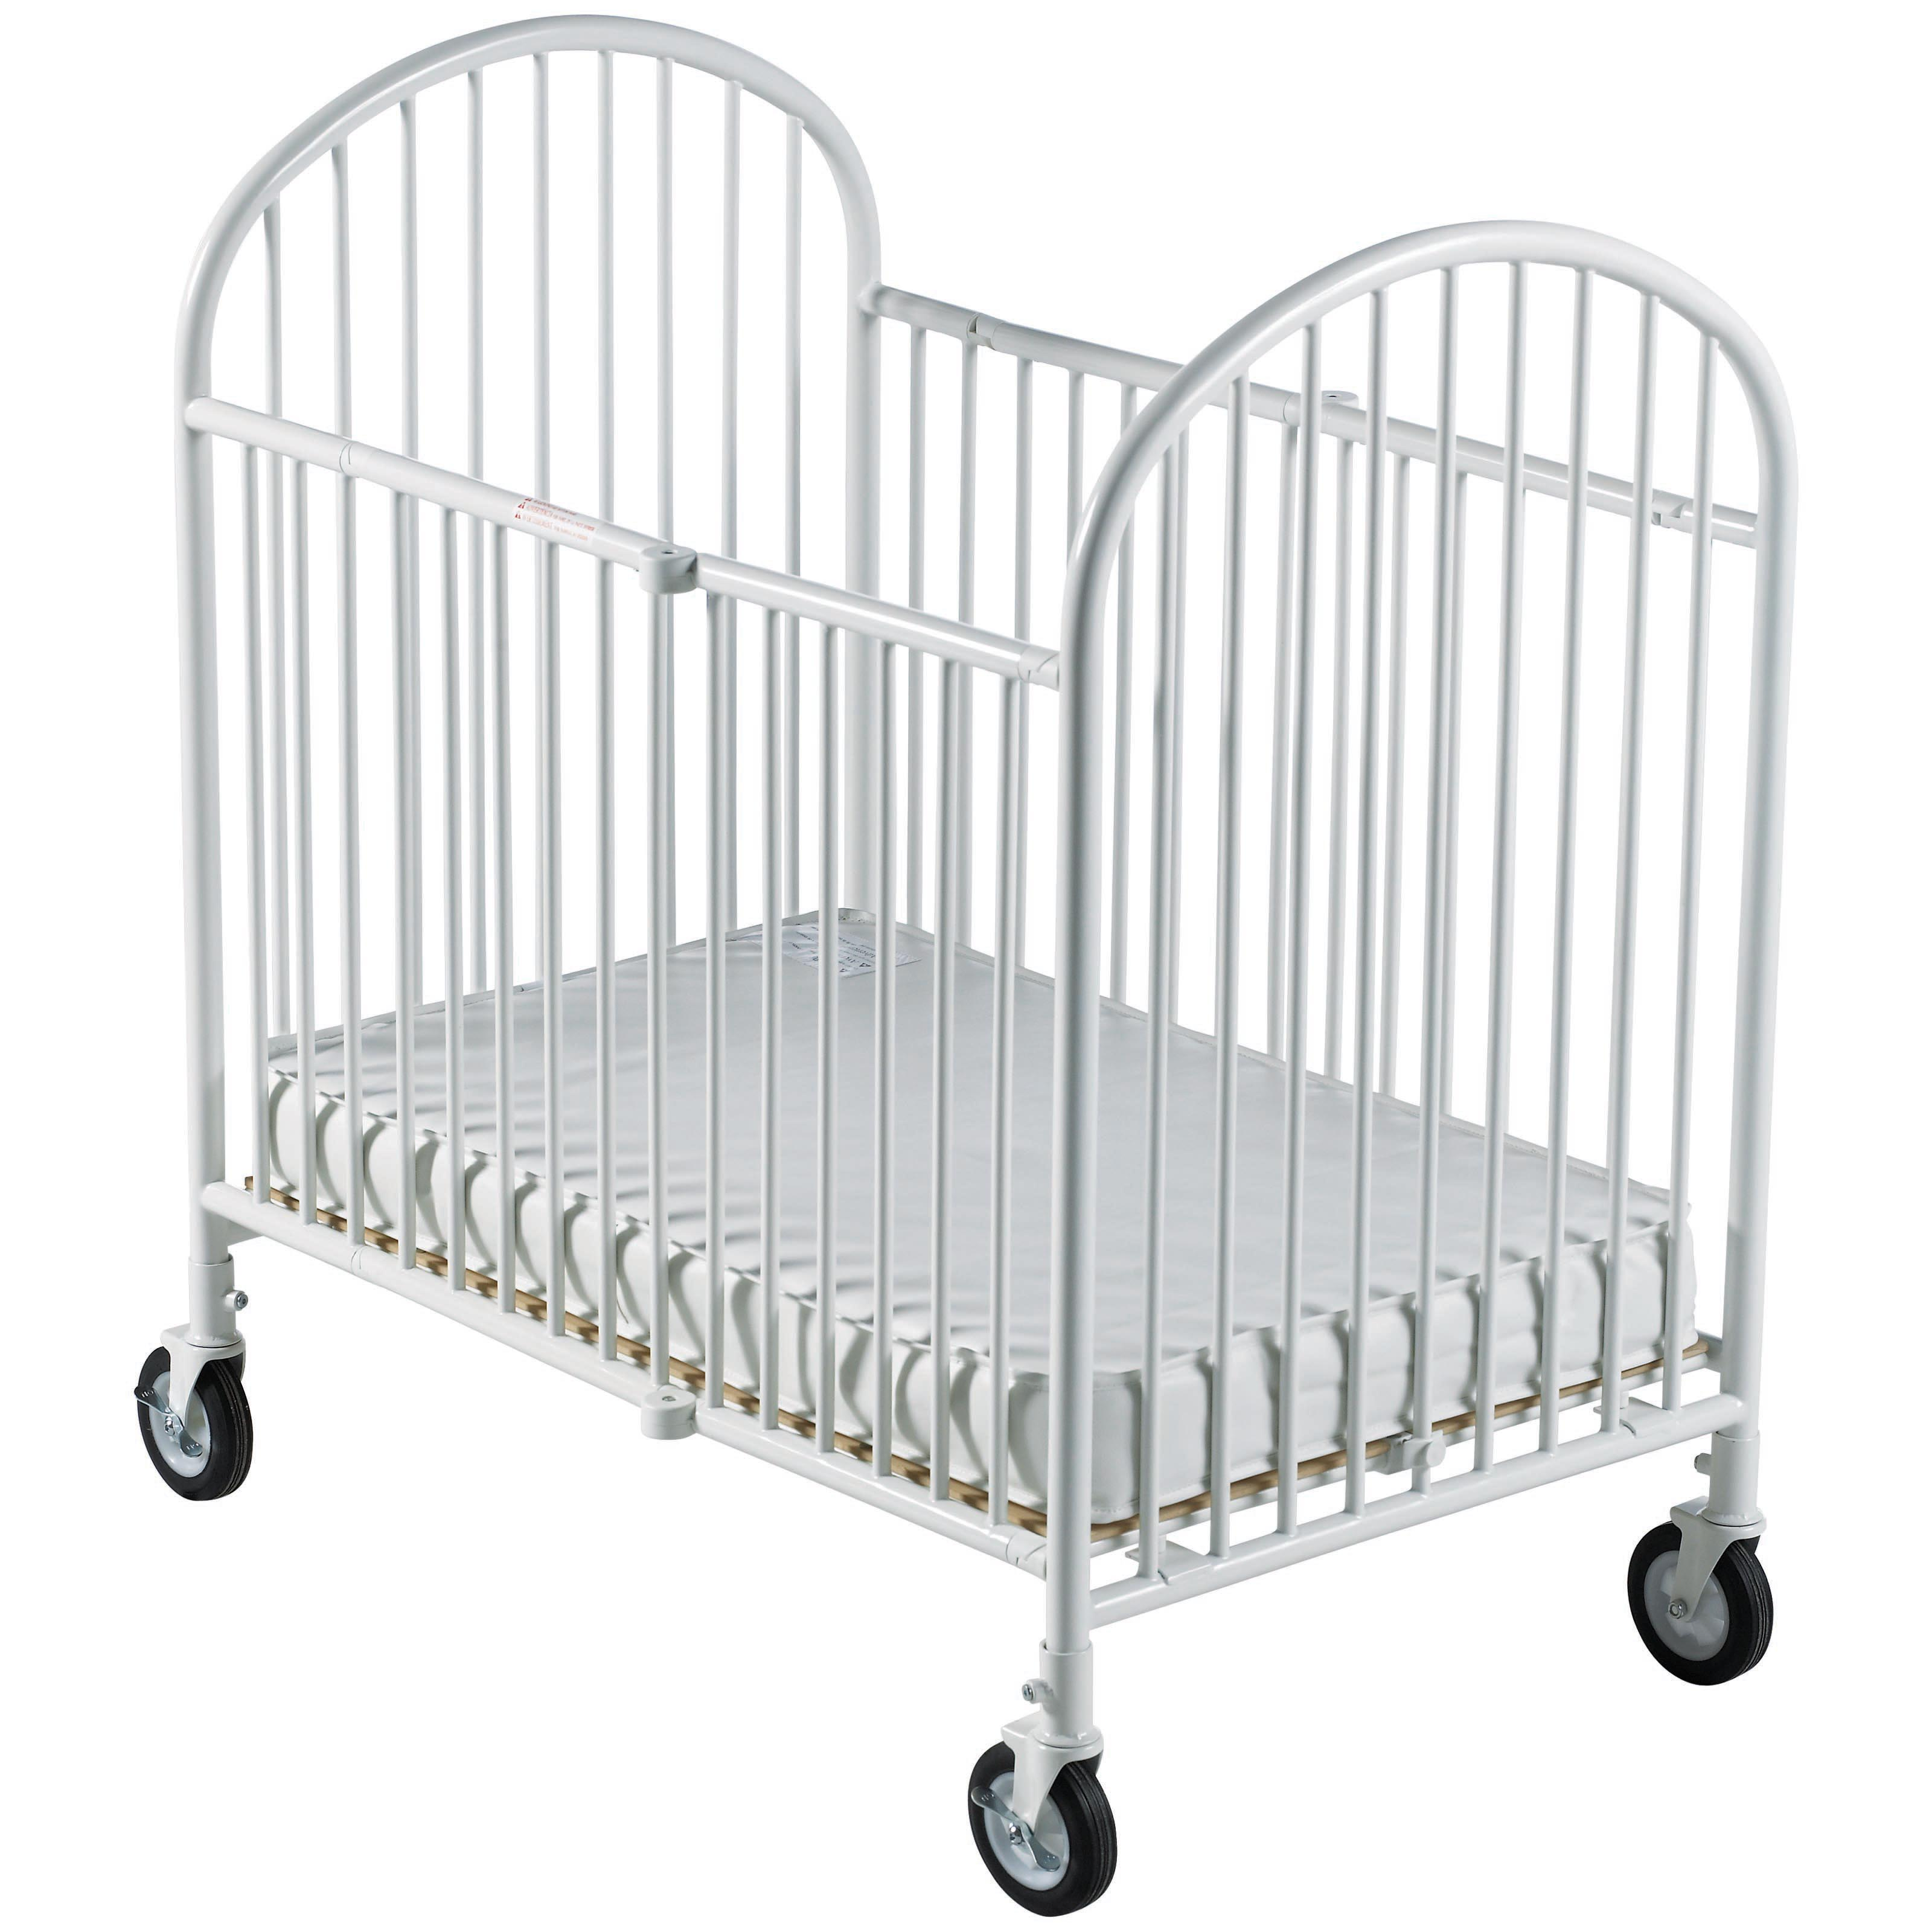 Foundations Pinnacle pact Size Steel Folding Crib with